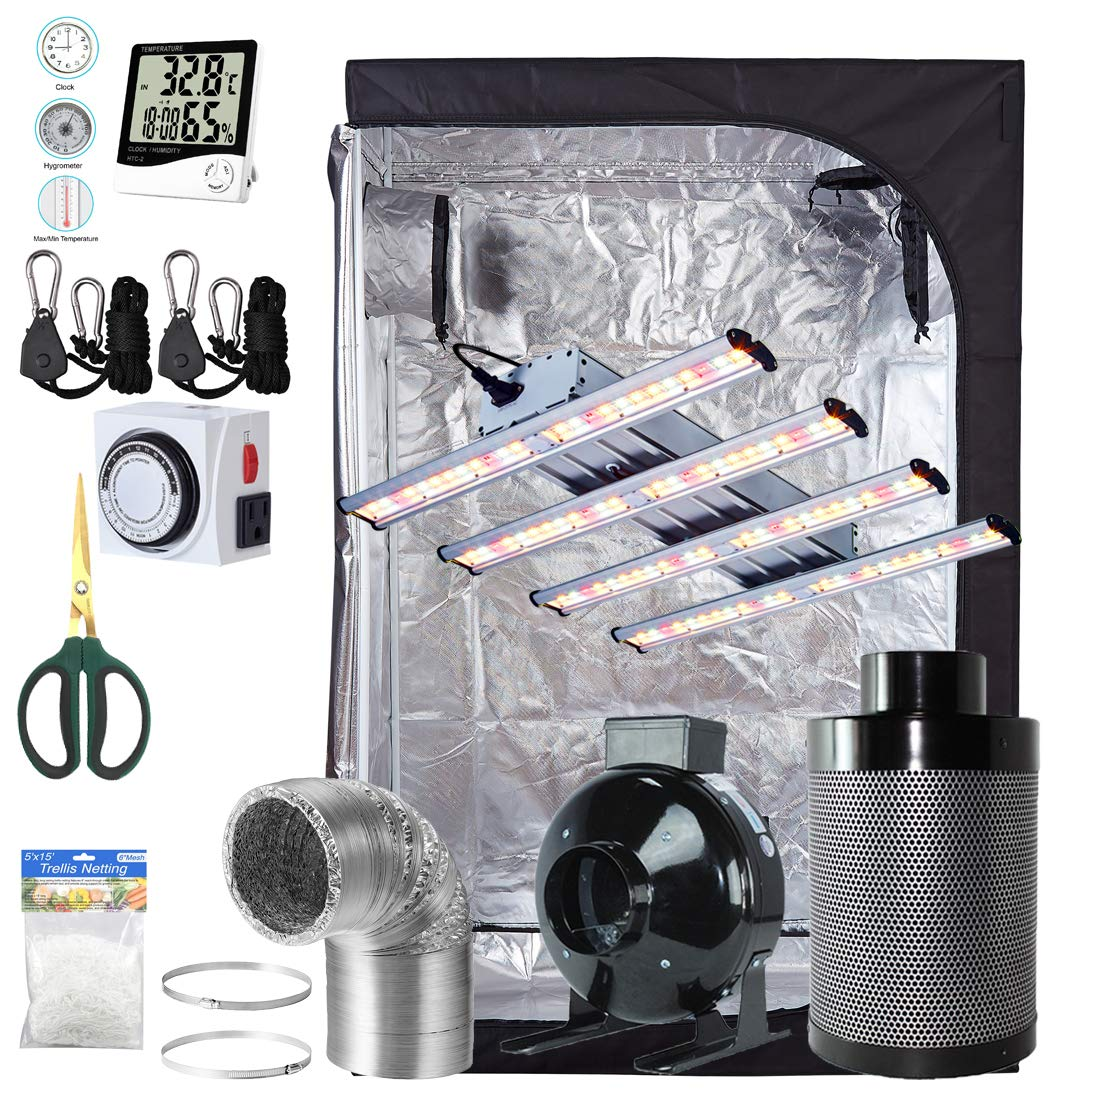 BloomGrow 1200W LED Full Spectrum Professional Grow Light Strips 48 x24 x72 600D Mylar Grow Tent Room 6 Inline Fan Air Carbon Filter Ventilation System Indoor Plant Grow Tent Complete Kit